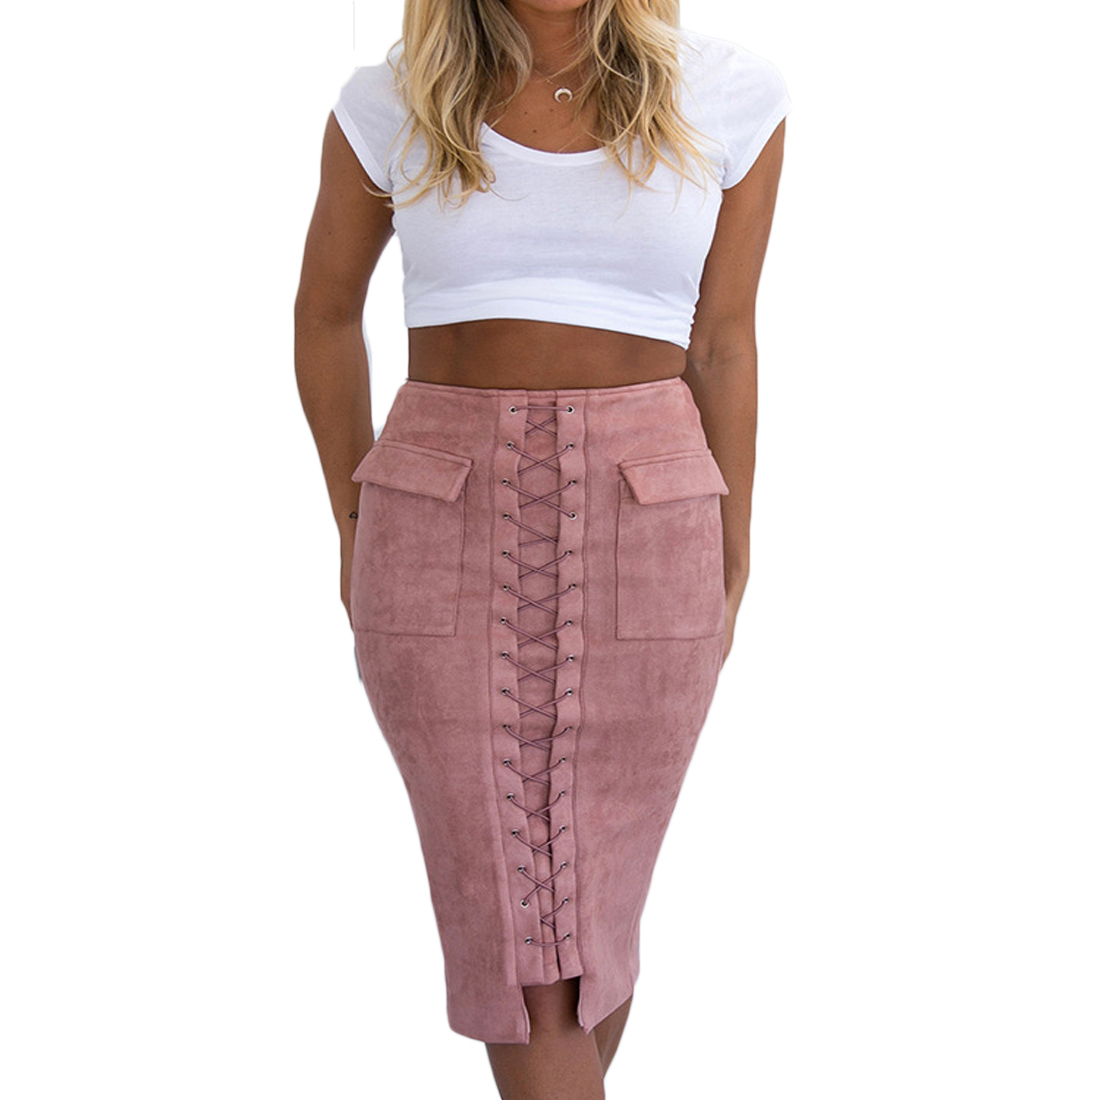 YJSFG HOUSE Sexy Women Skirts Bandage High Waist Bodycon Knee Length Straight Pencil Skirt Career Skirt Lace Vintage 2018 New in Skirts from Women 39 s Clothing